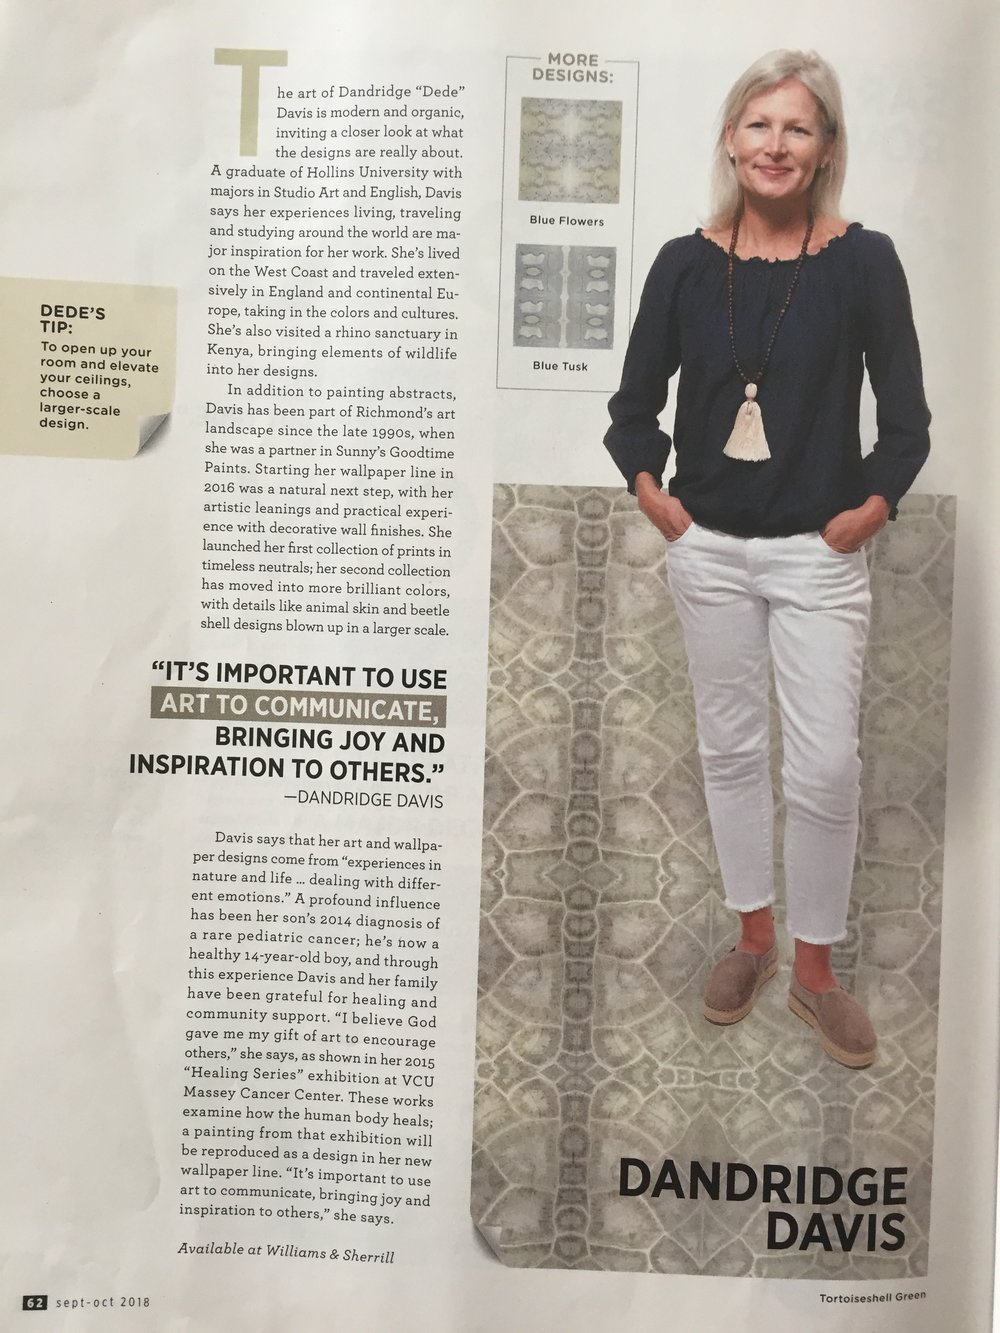 THE CREATIVES - A big THANKS to Meridith Ingram, Brooke Chappell, Jay Paul, and Lee Hawkins for their Sept-Oct 2018 RHome issue #rhomemag The Creatives!!! And thanks to Williams & Sherrill Interiors for carrying my wallpaper line!! A shout out to Leah Muhlenfeld for her support! All of you have been a pleasure to work with!I'm loving the process of Painting and Creating Wallpaper. It makes me happy to get it into homes to inspire the creativity that lives inside each of you! God calls us to use our gift ... go ahead!!!